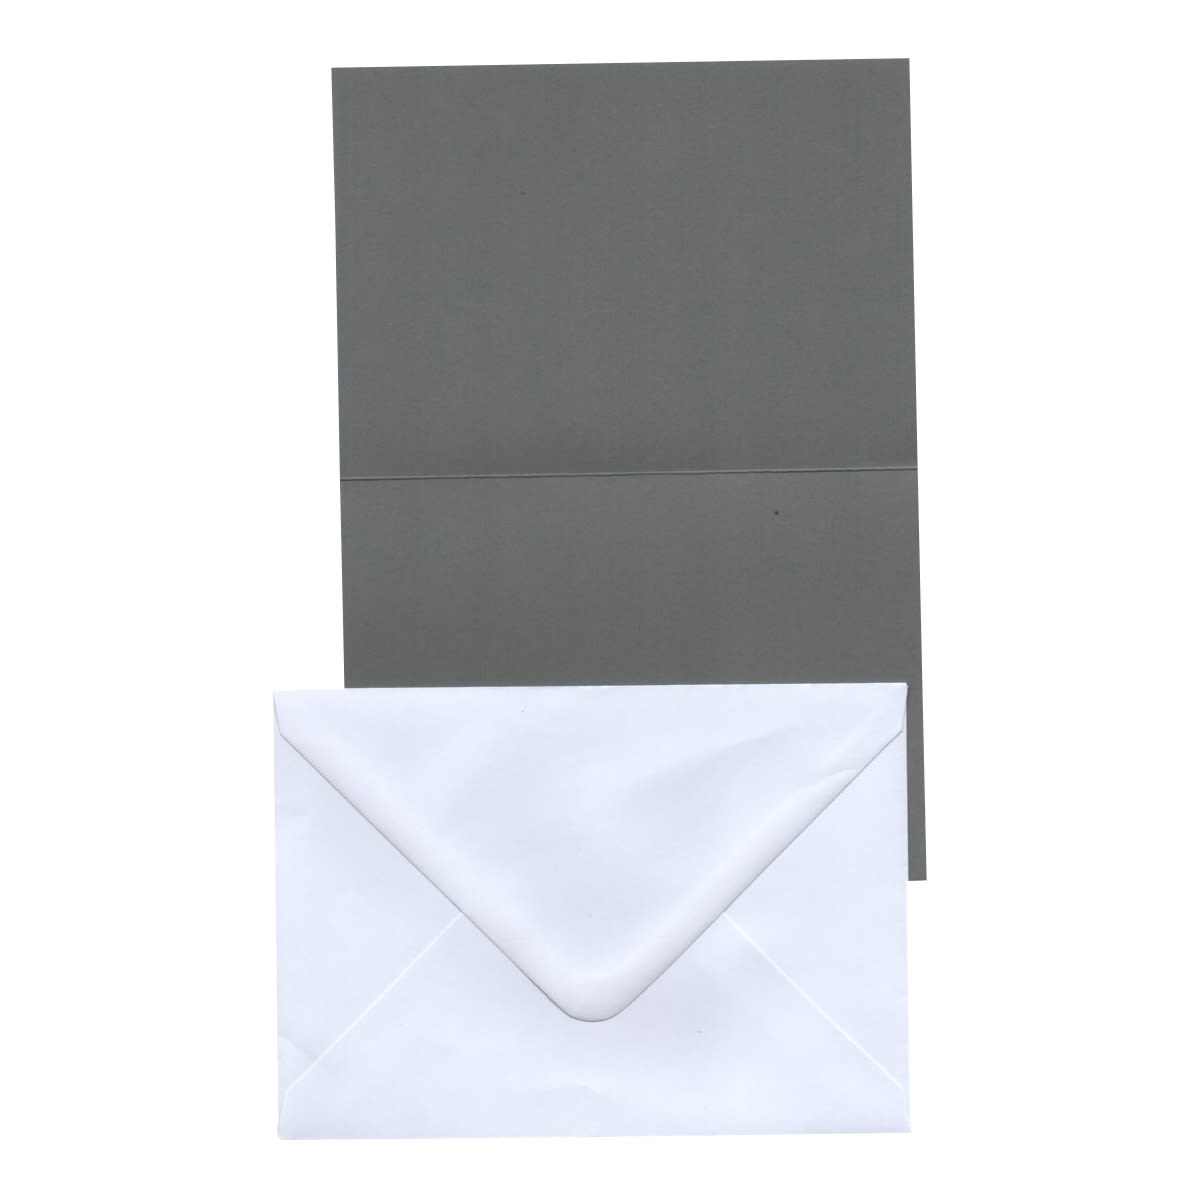 A6 DARK GREY CARD BLANKS & WHITE ENVELOPES (PACK OF 20)